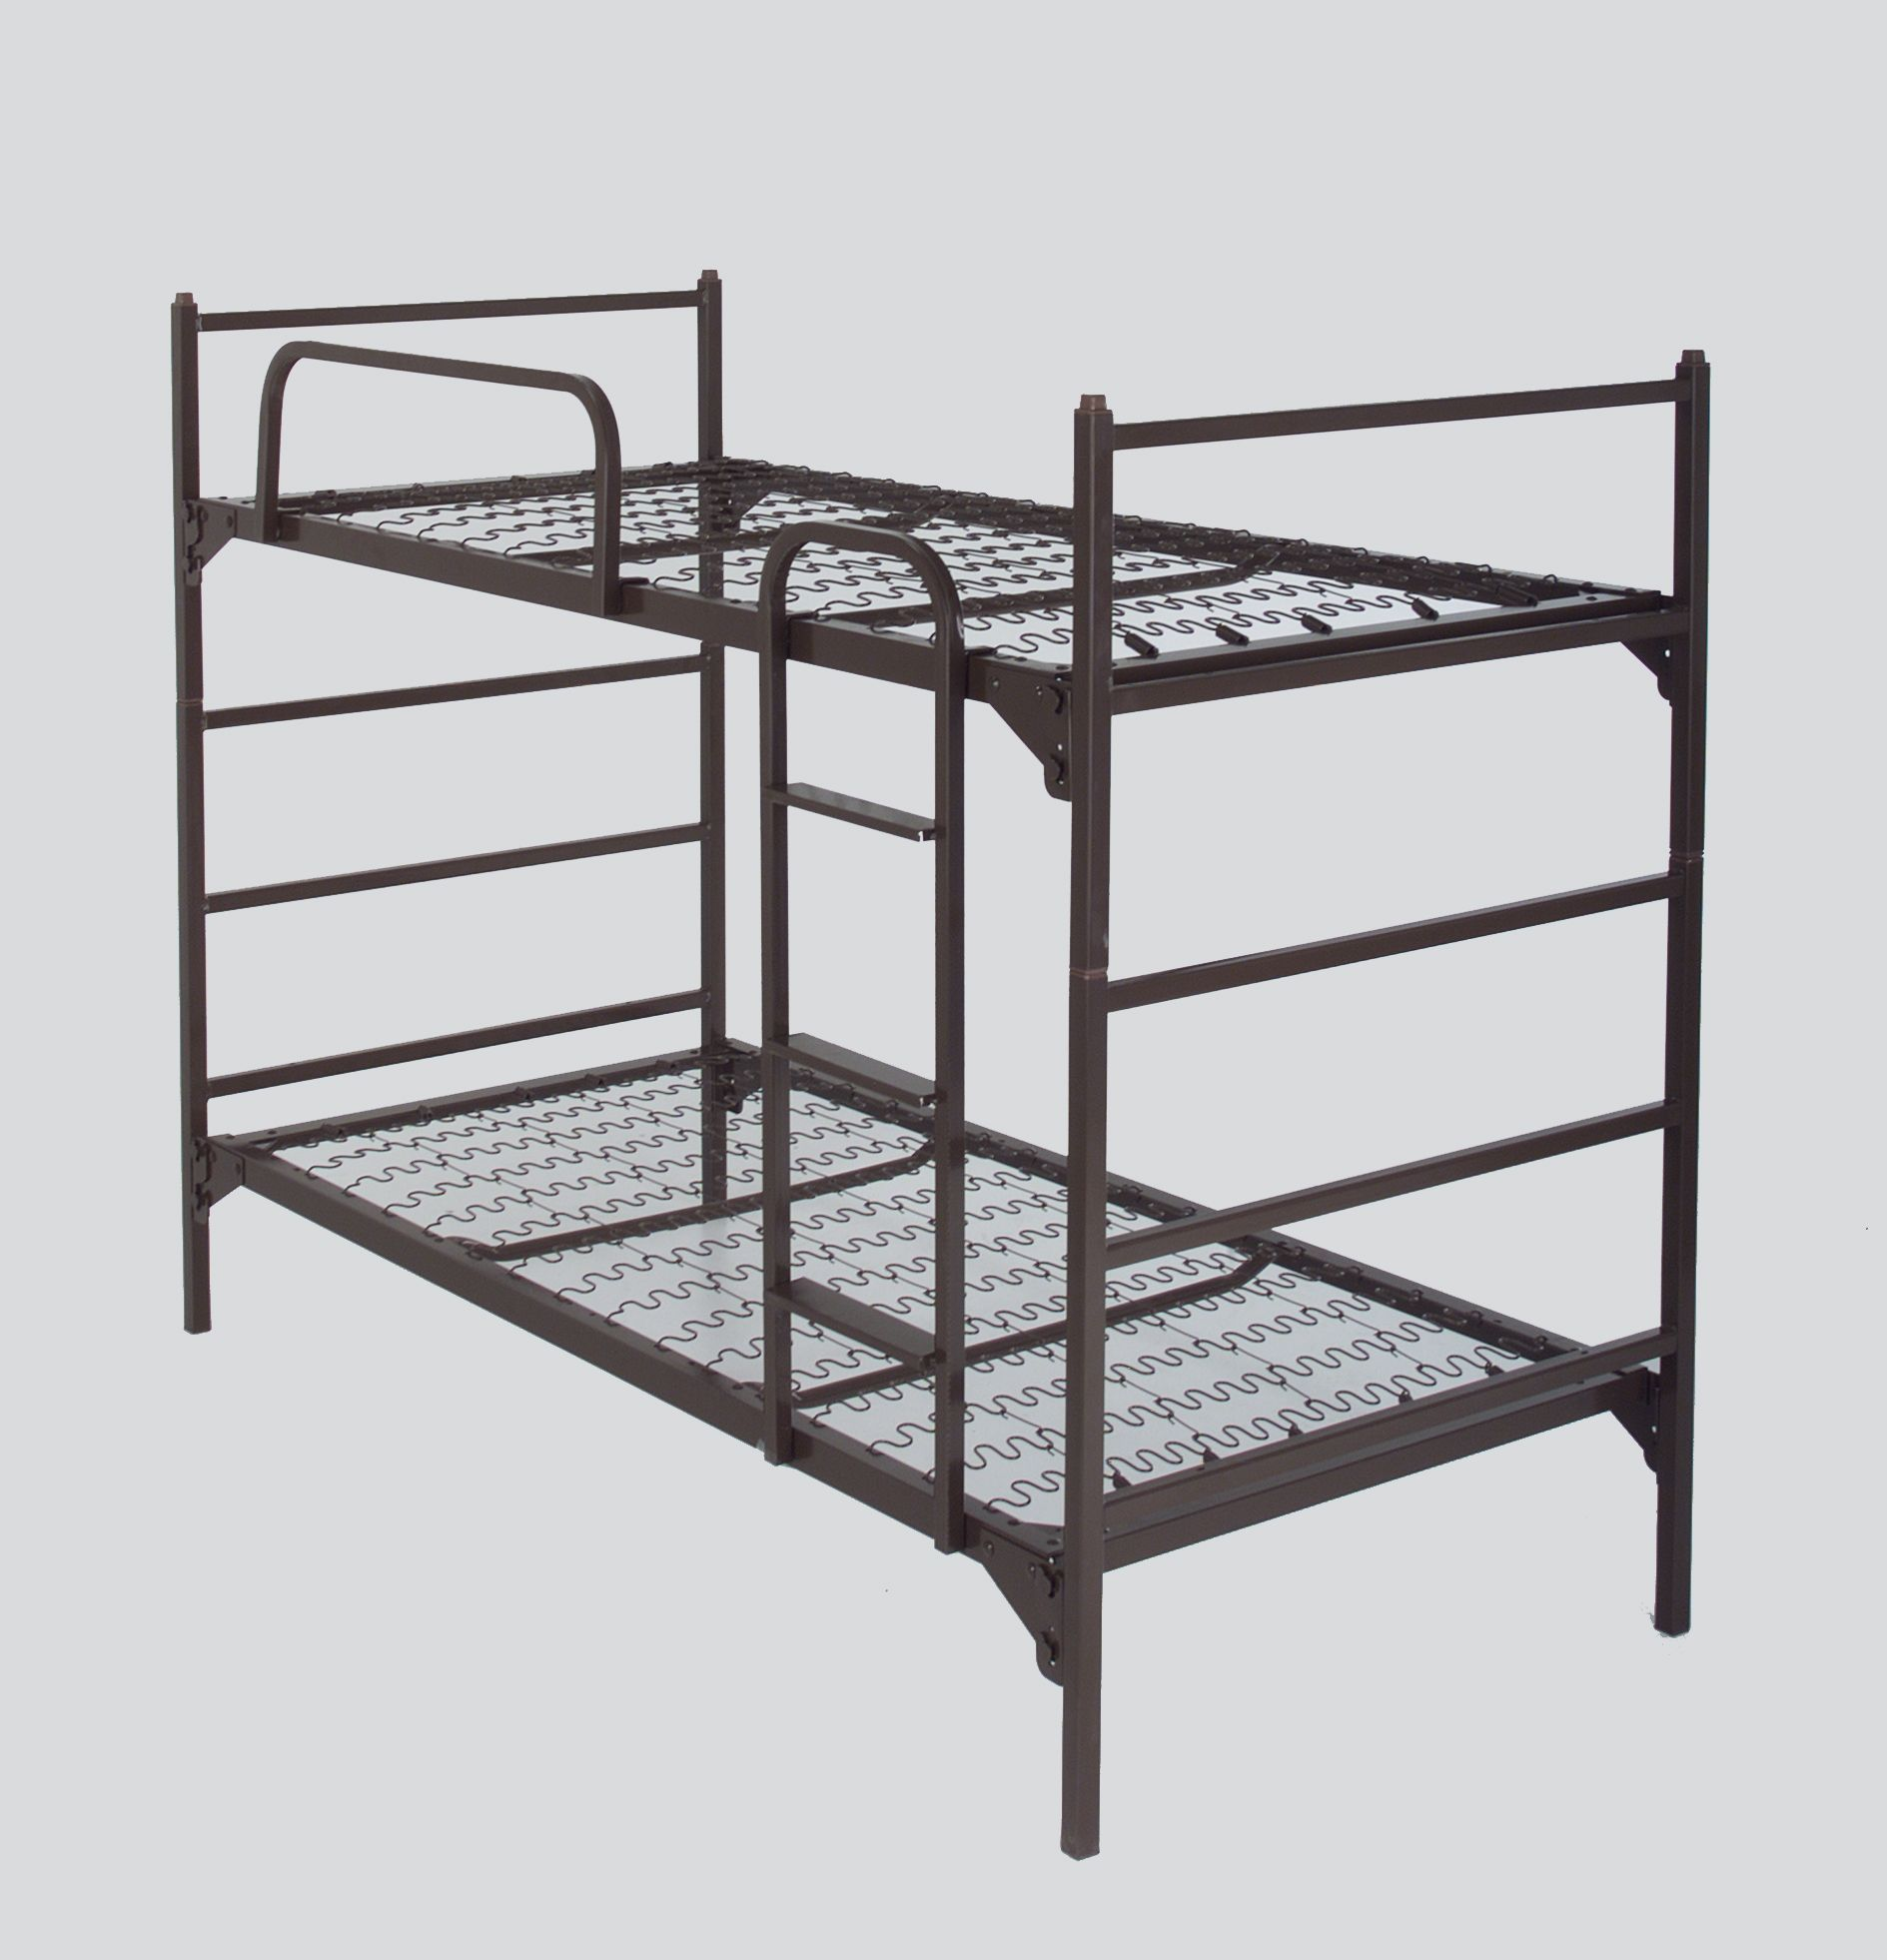 Picture of: China Bedroom Furniture Bunk Bed China Bedroom Furniture Bunk Bed Manufacturers And Suppliers On Alibaba Com